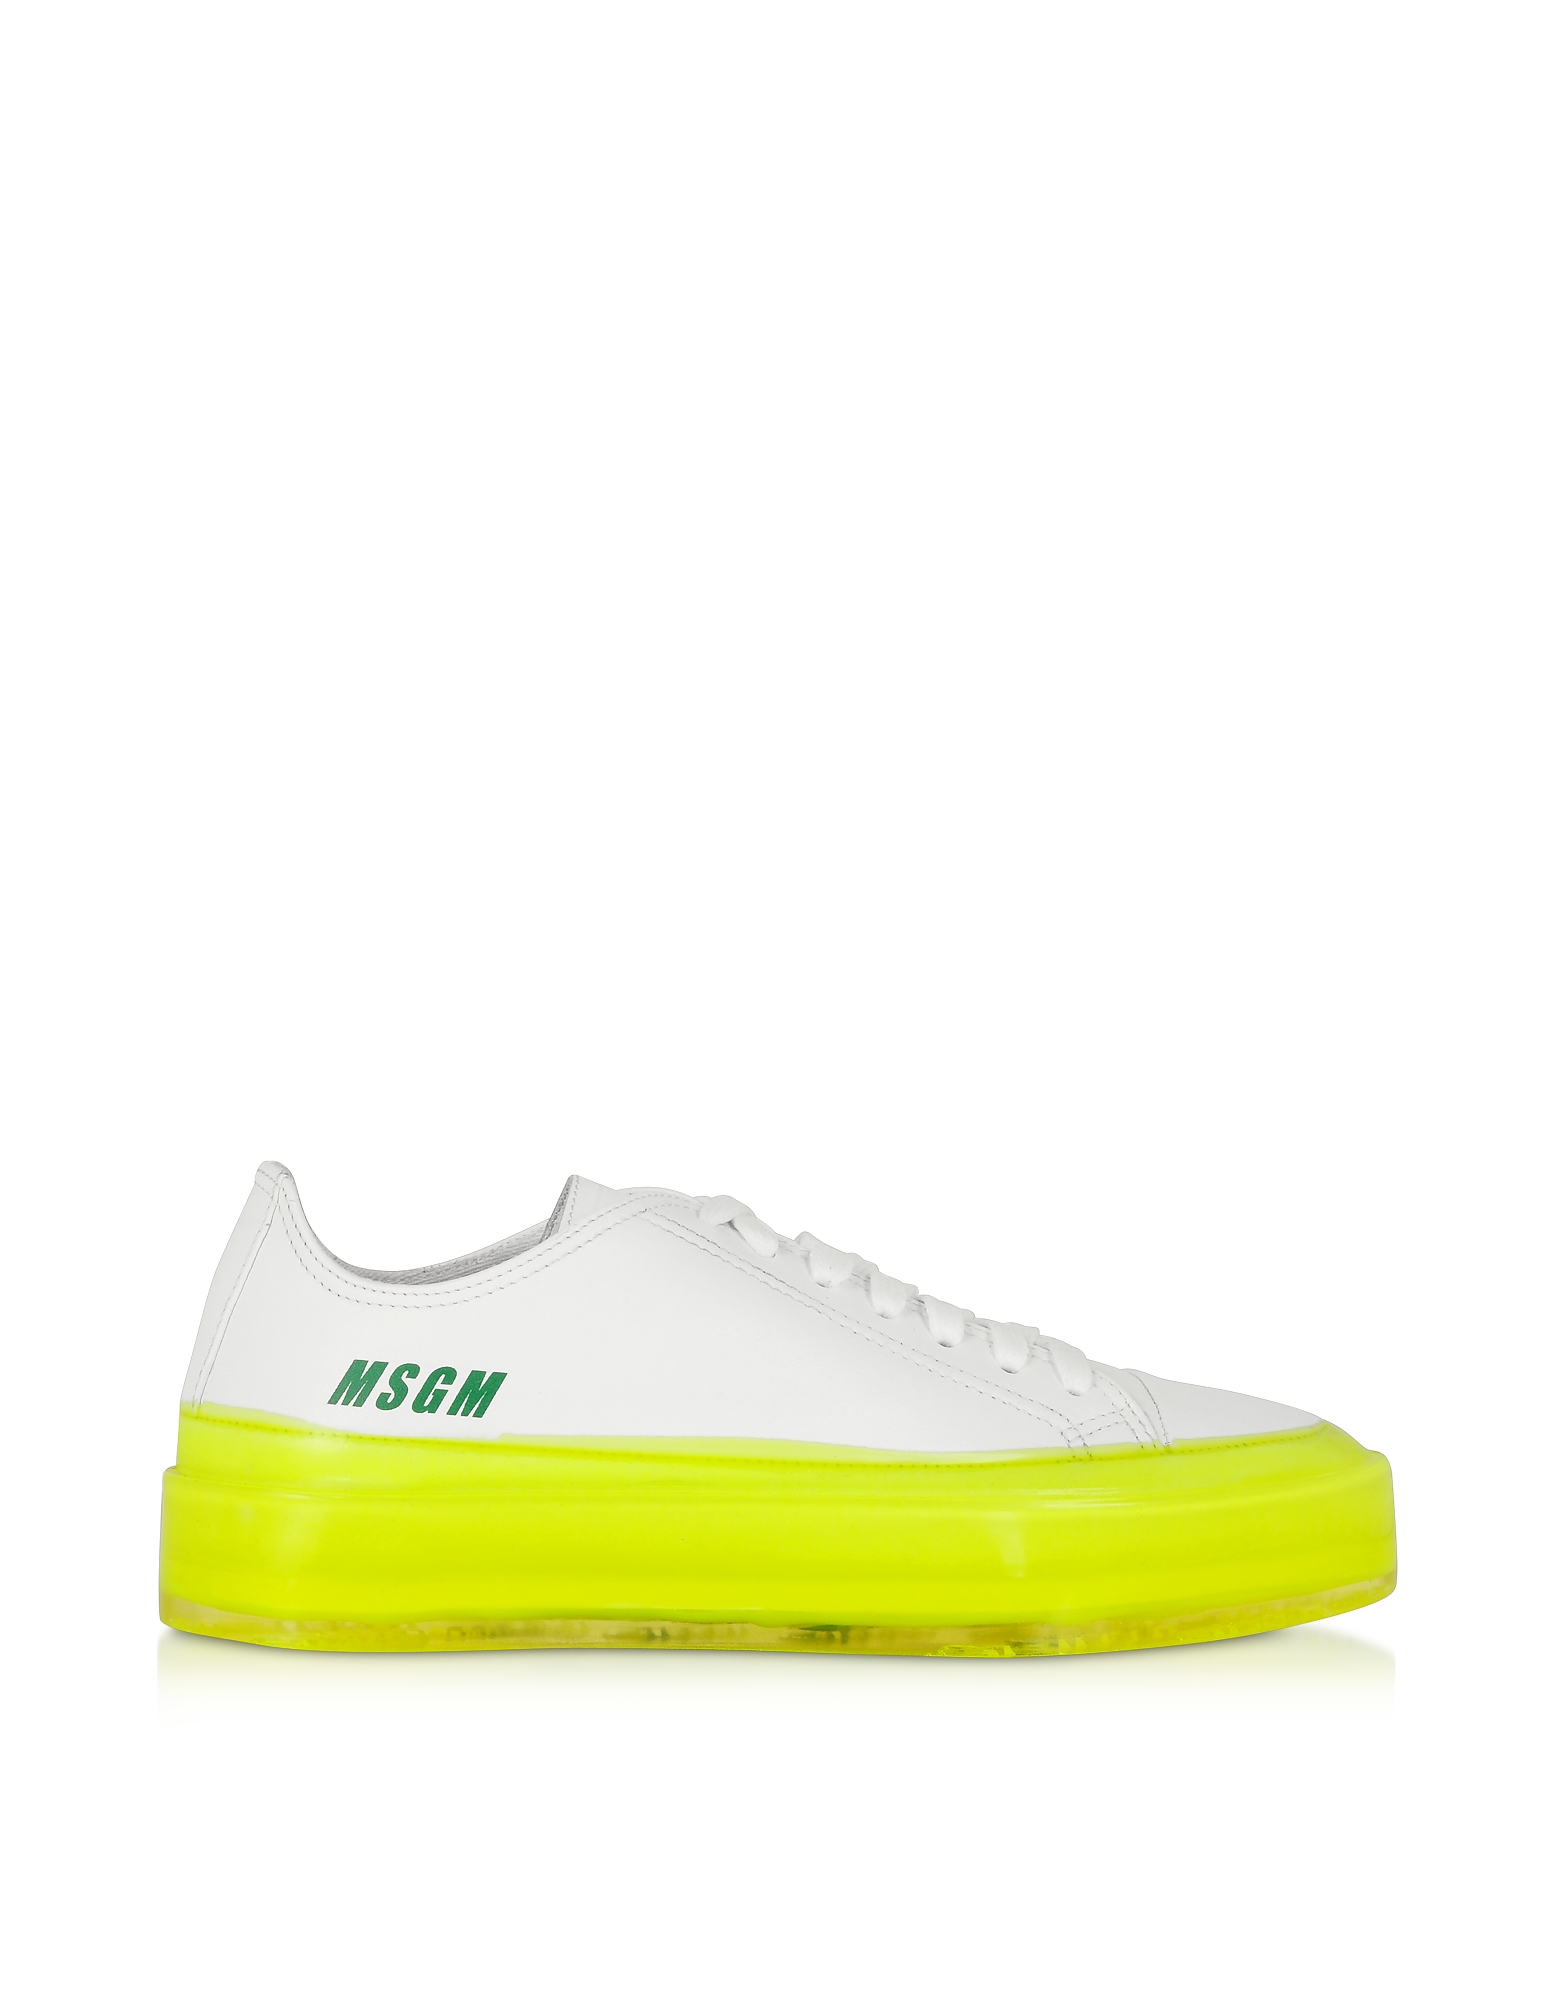 MSGM Fluo Floating Sneakers, White